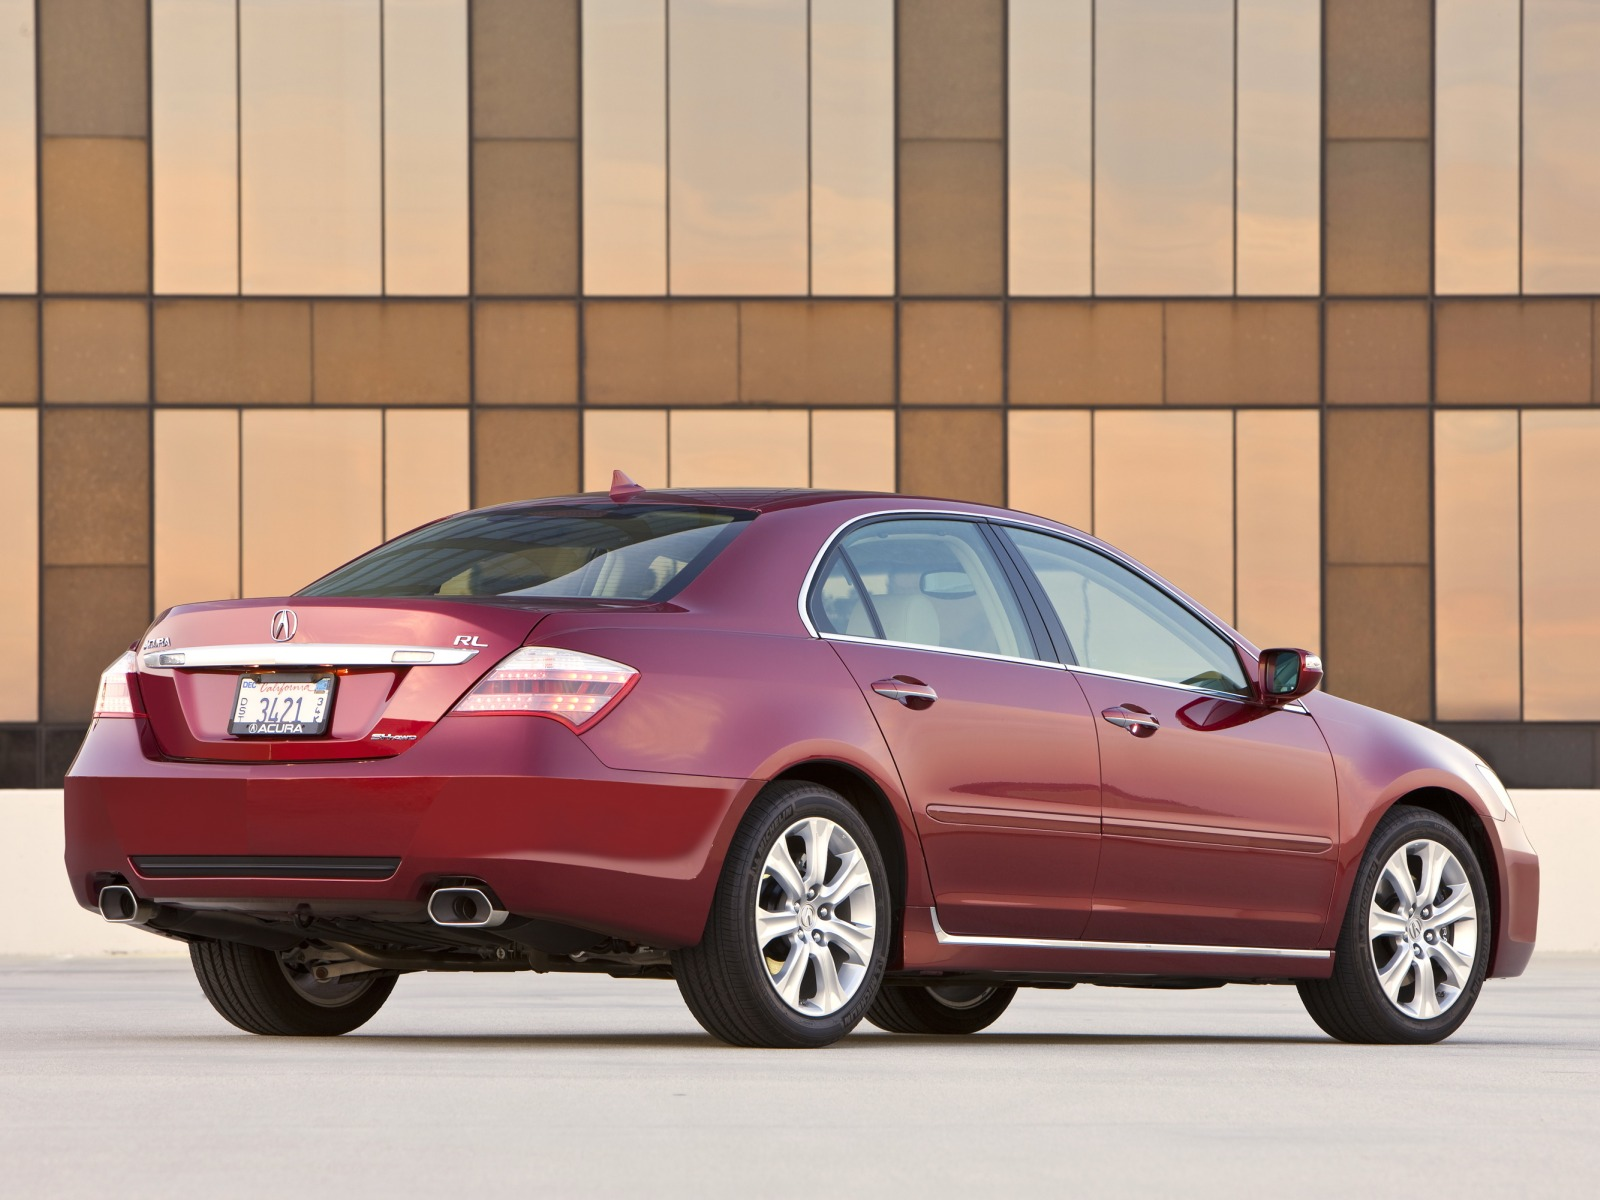 2009 Acura RL Pictures & Specifications Wallpapers